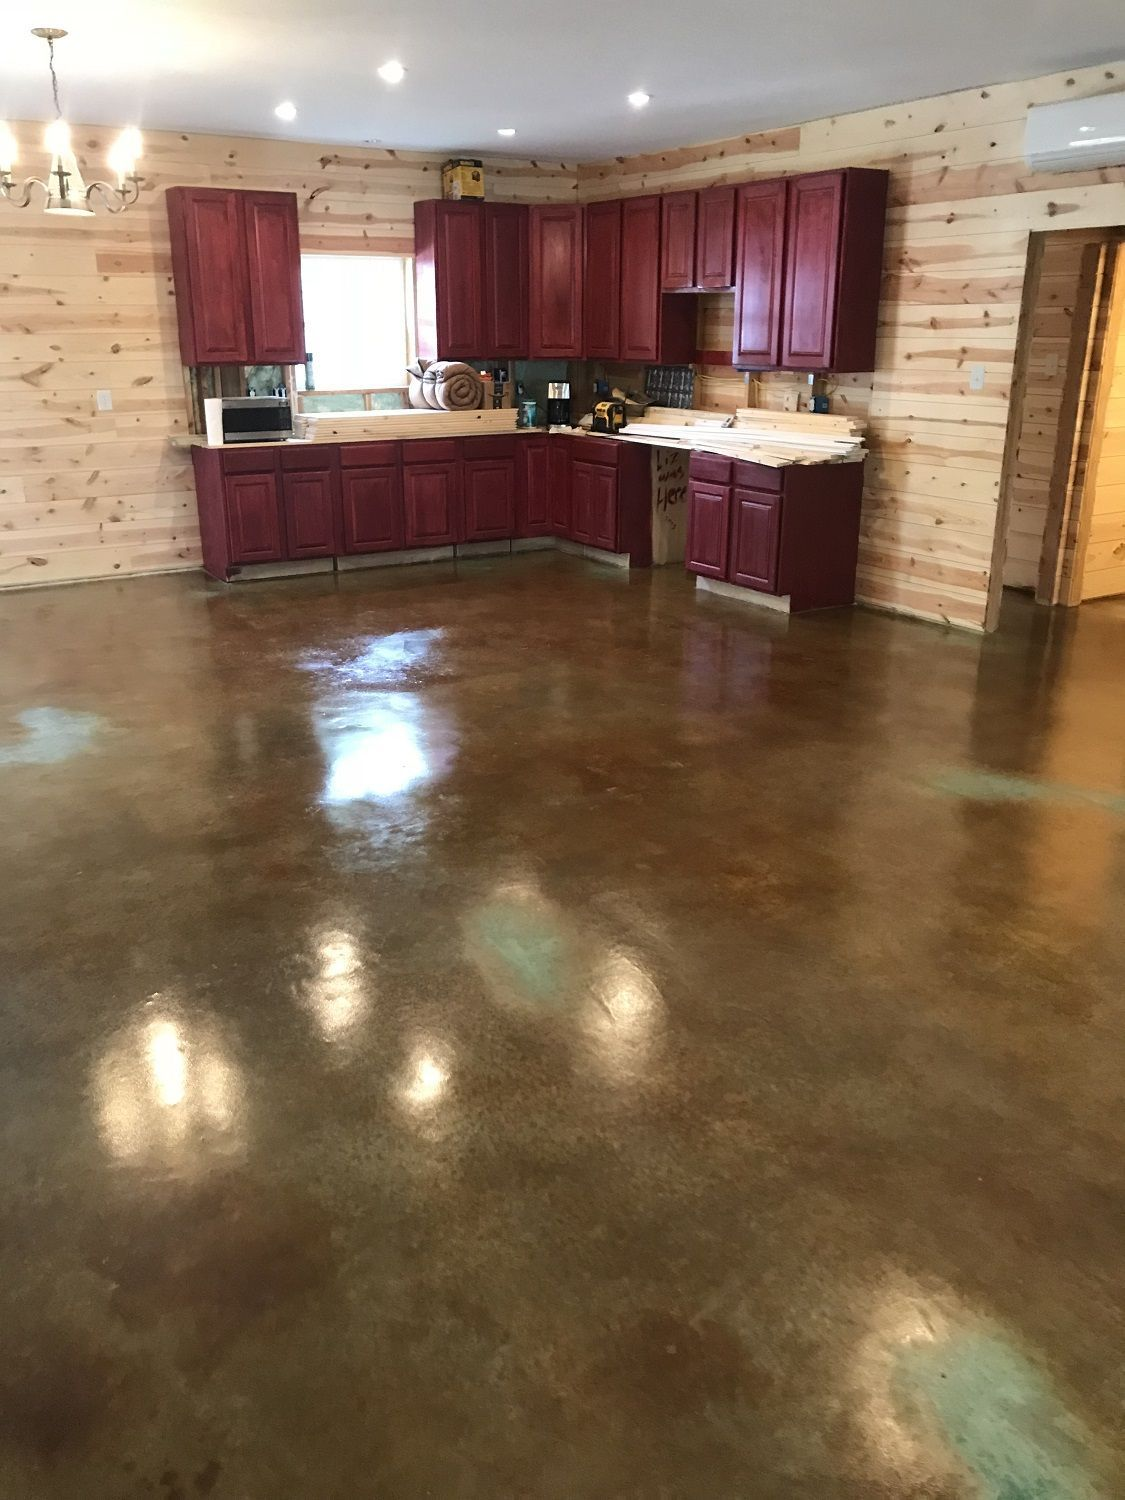 Polyurethane For Concrete Floors High Gloss Water Based And Low Odor Polyurethane Is Perfect For Interior Use And Concrete Floors Flooring Basement Flooring